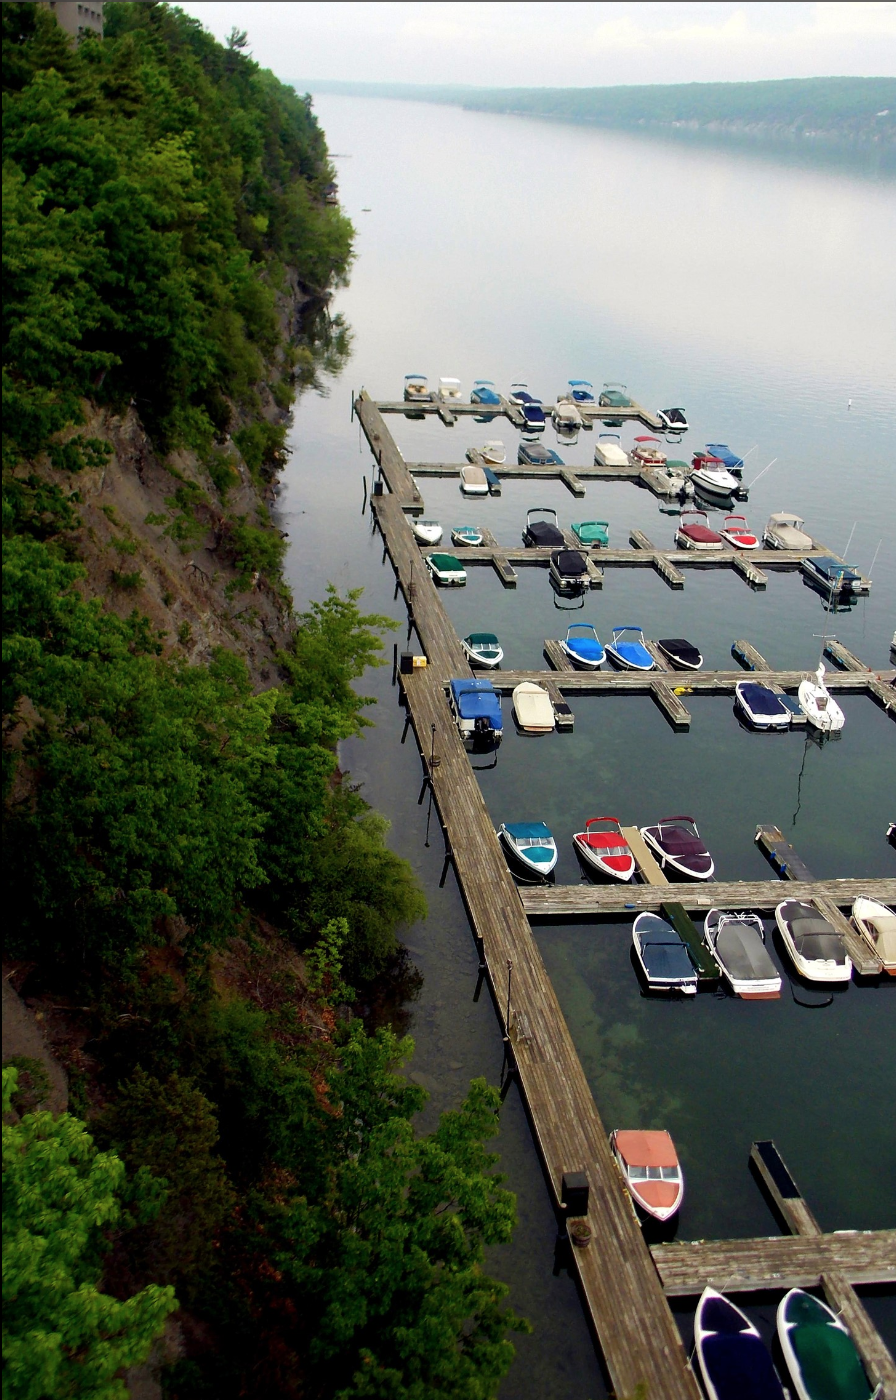 The view of the marina from the cliff